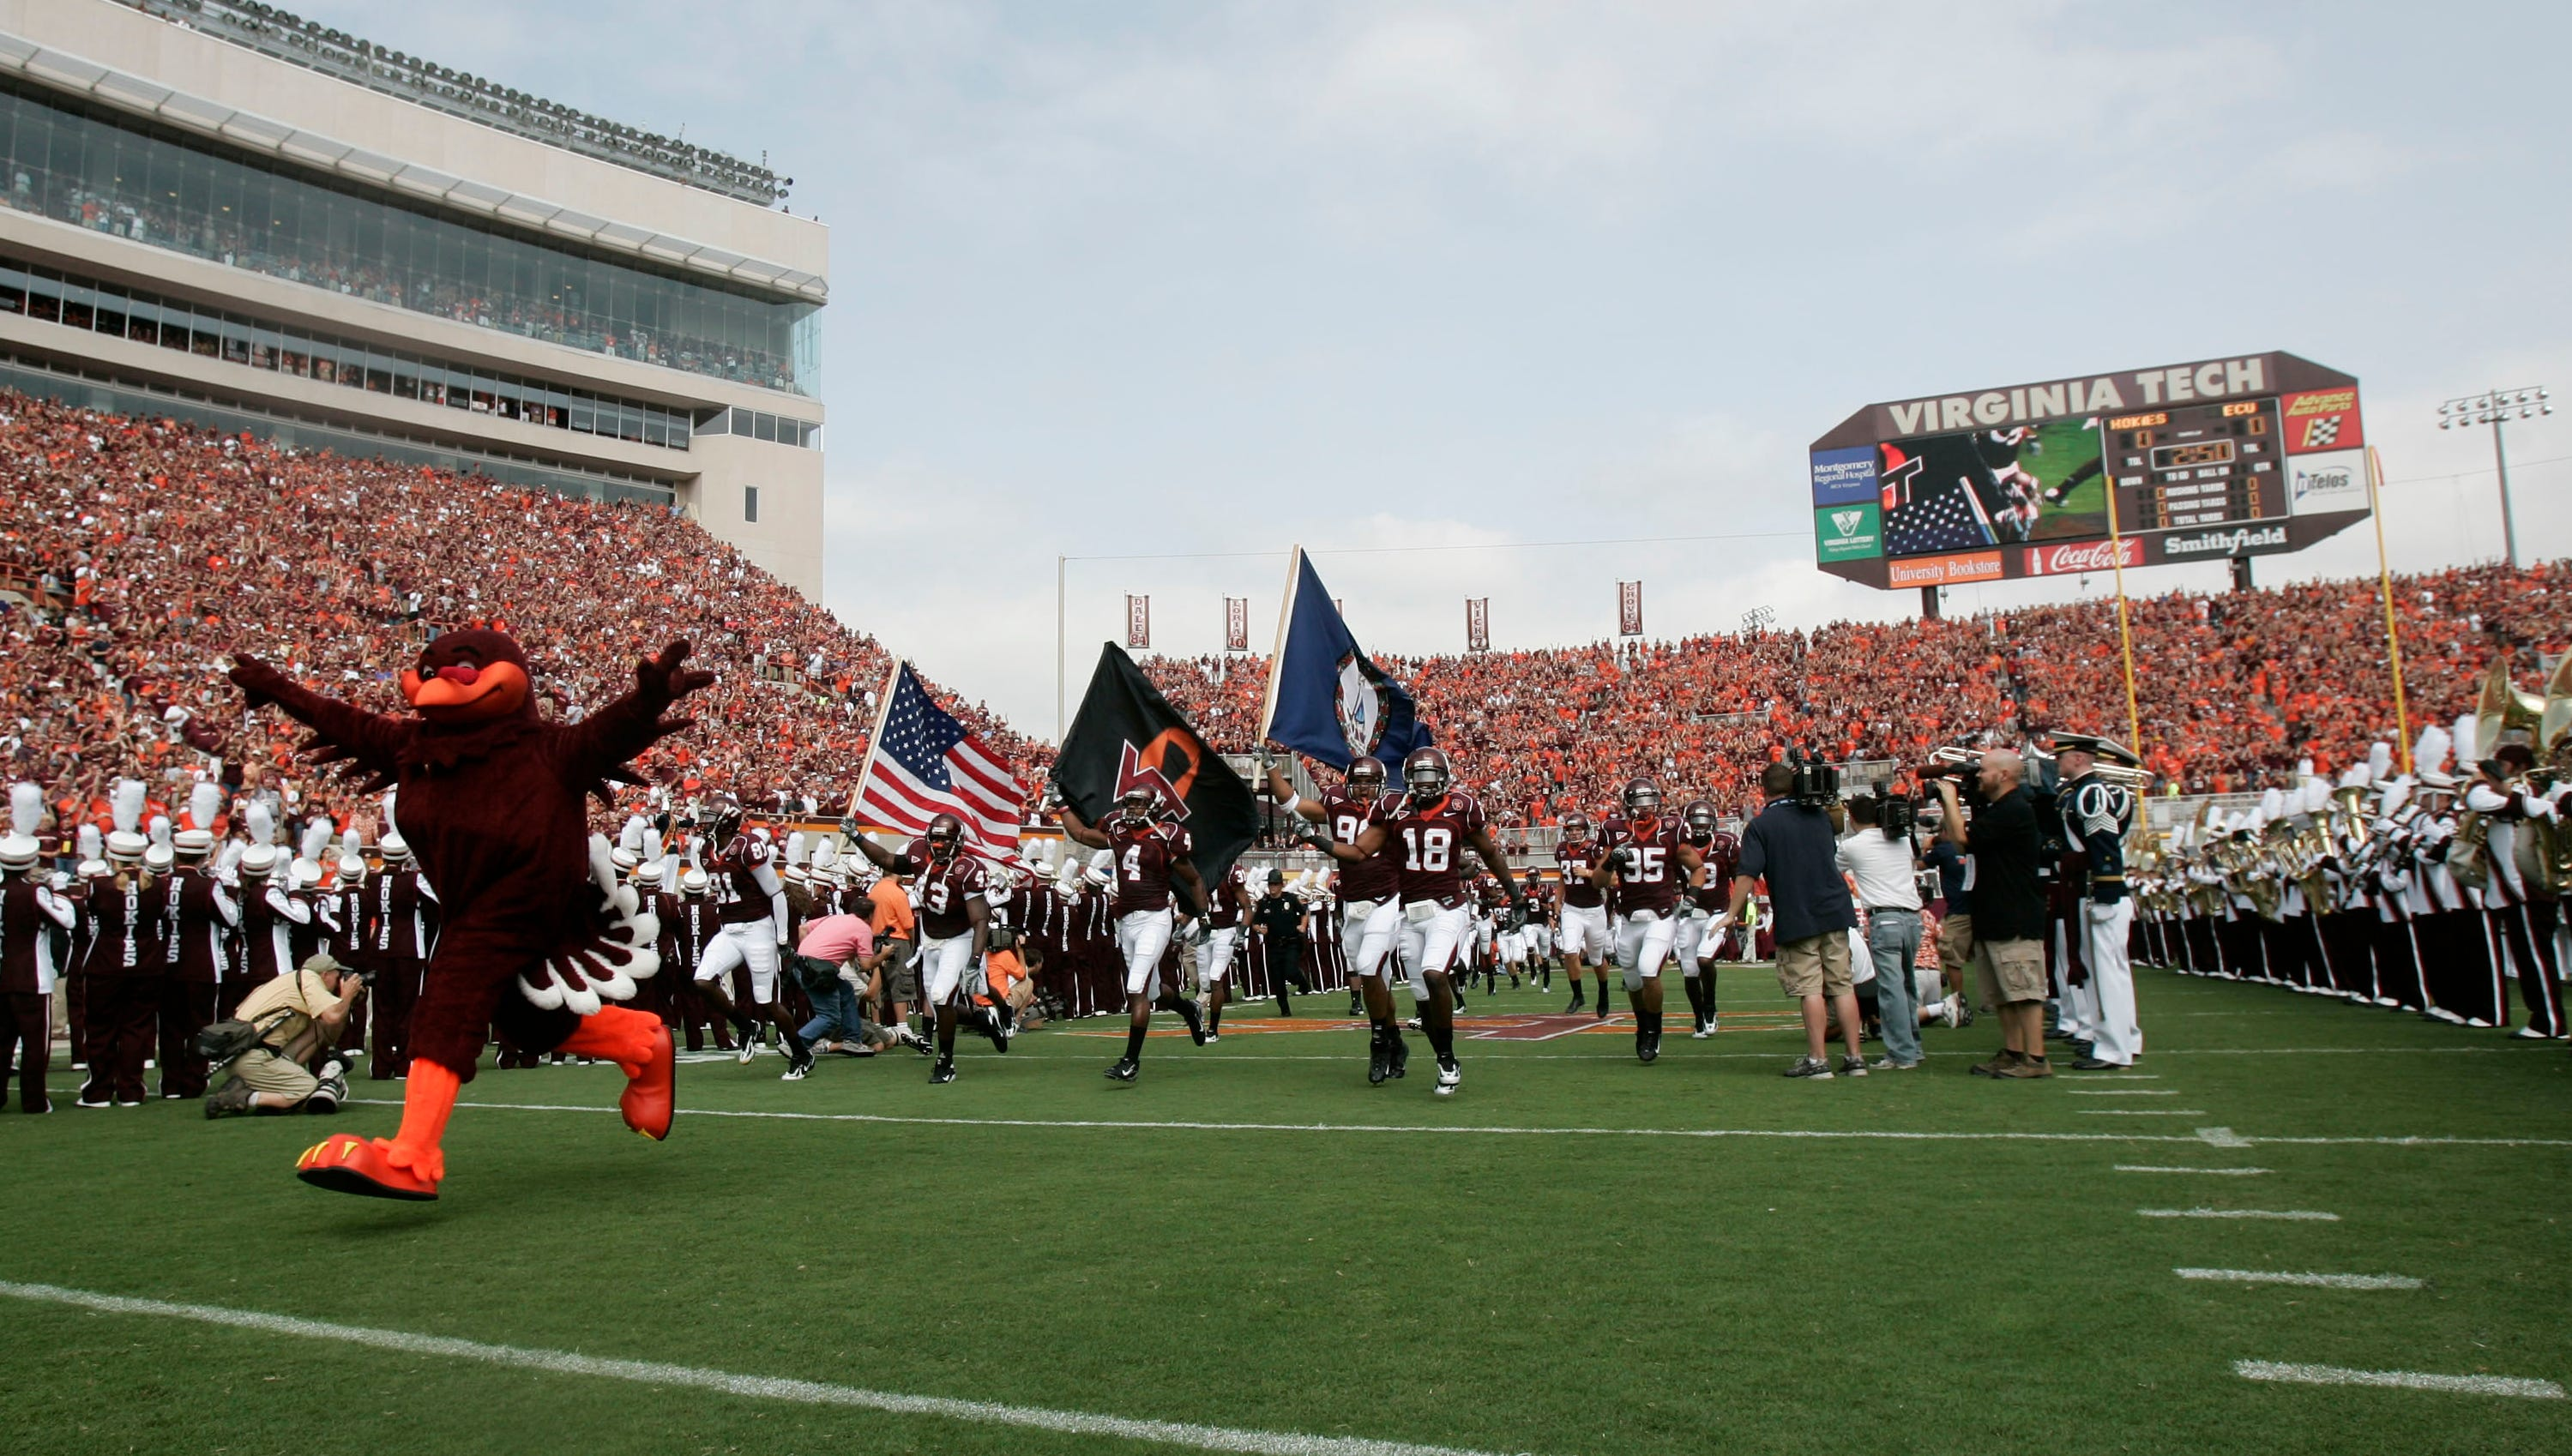 Lane Stadium, Virginia Tech: Hokies fans explode with the blasting of Enter Sandman on the speakers right before the home team takes the field and don't let up throughout the game.